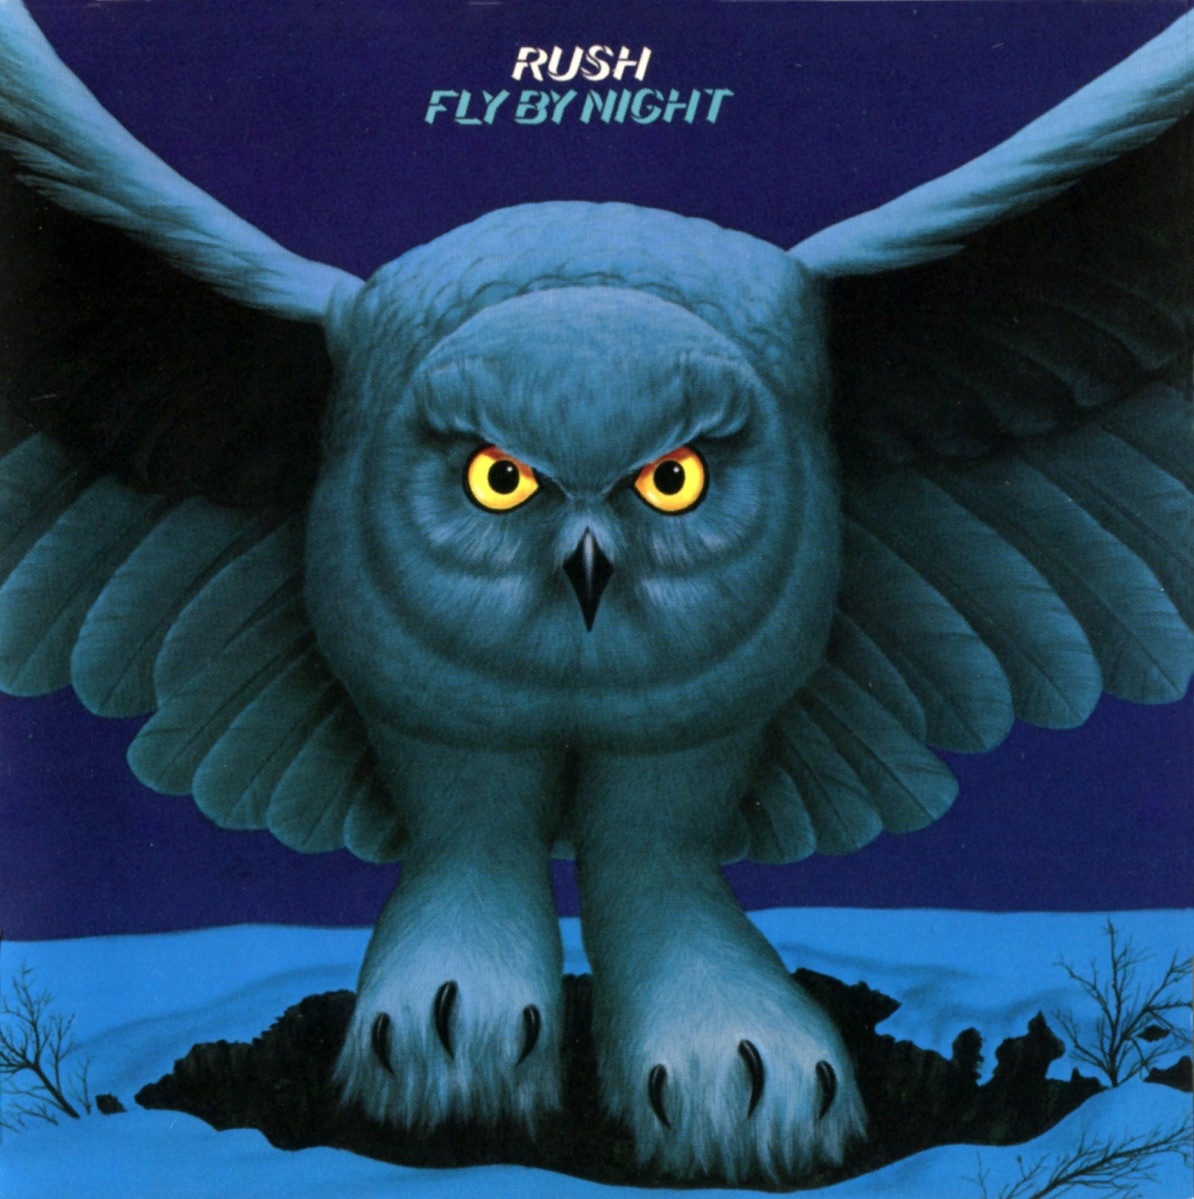 Discografia Rush - Parte 2 - álbum: Fly By Night - 1975